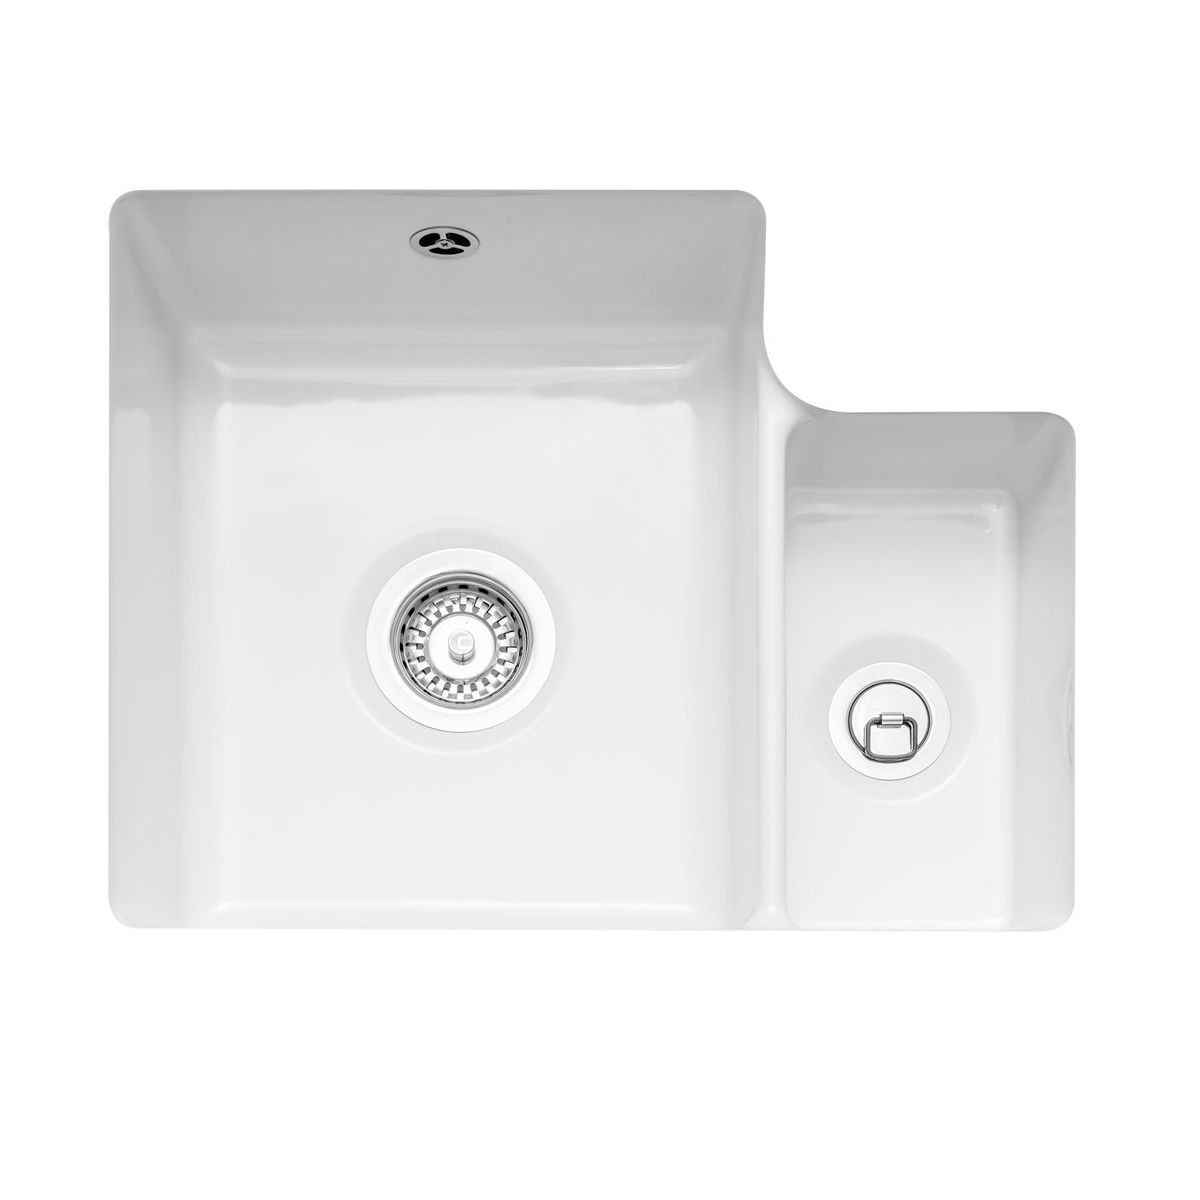 Kitchen Taps Price Caple Ettra 150 Ceramic Undermount Kitchen Sink - Sinks